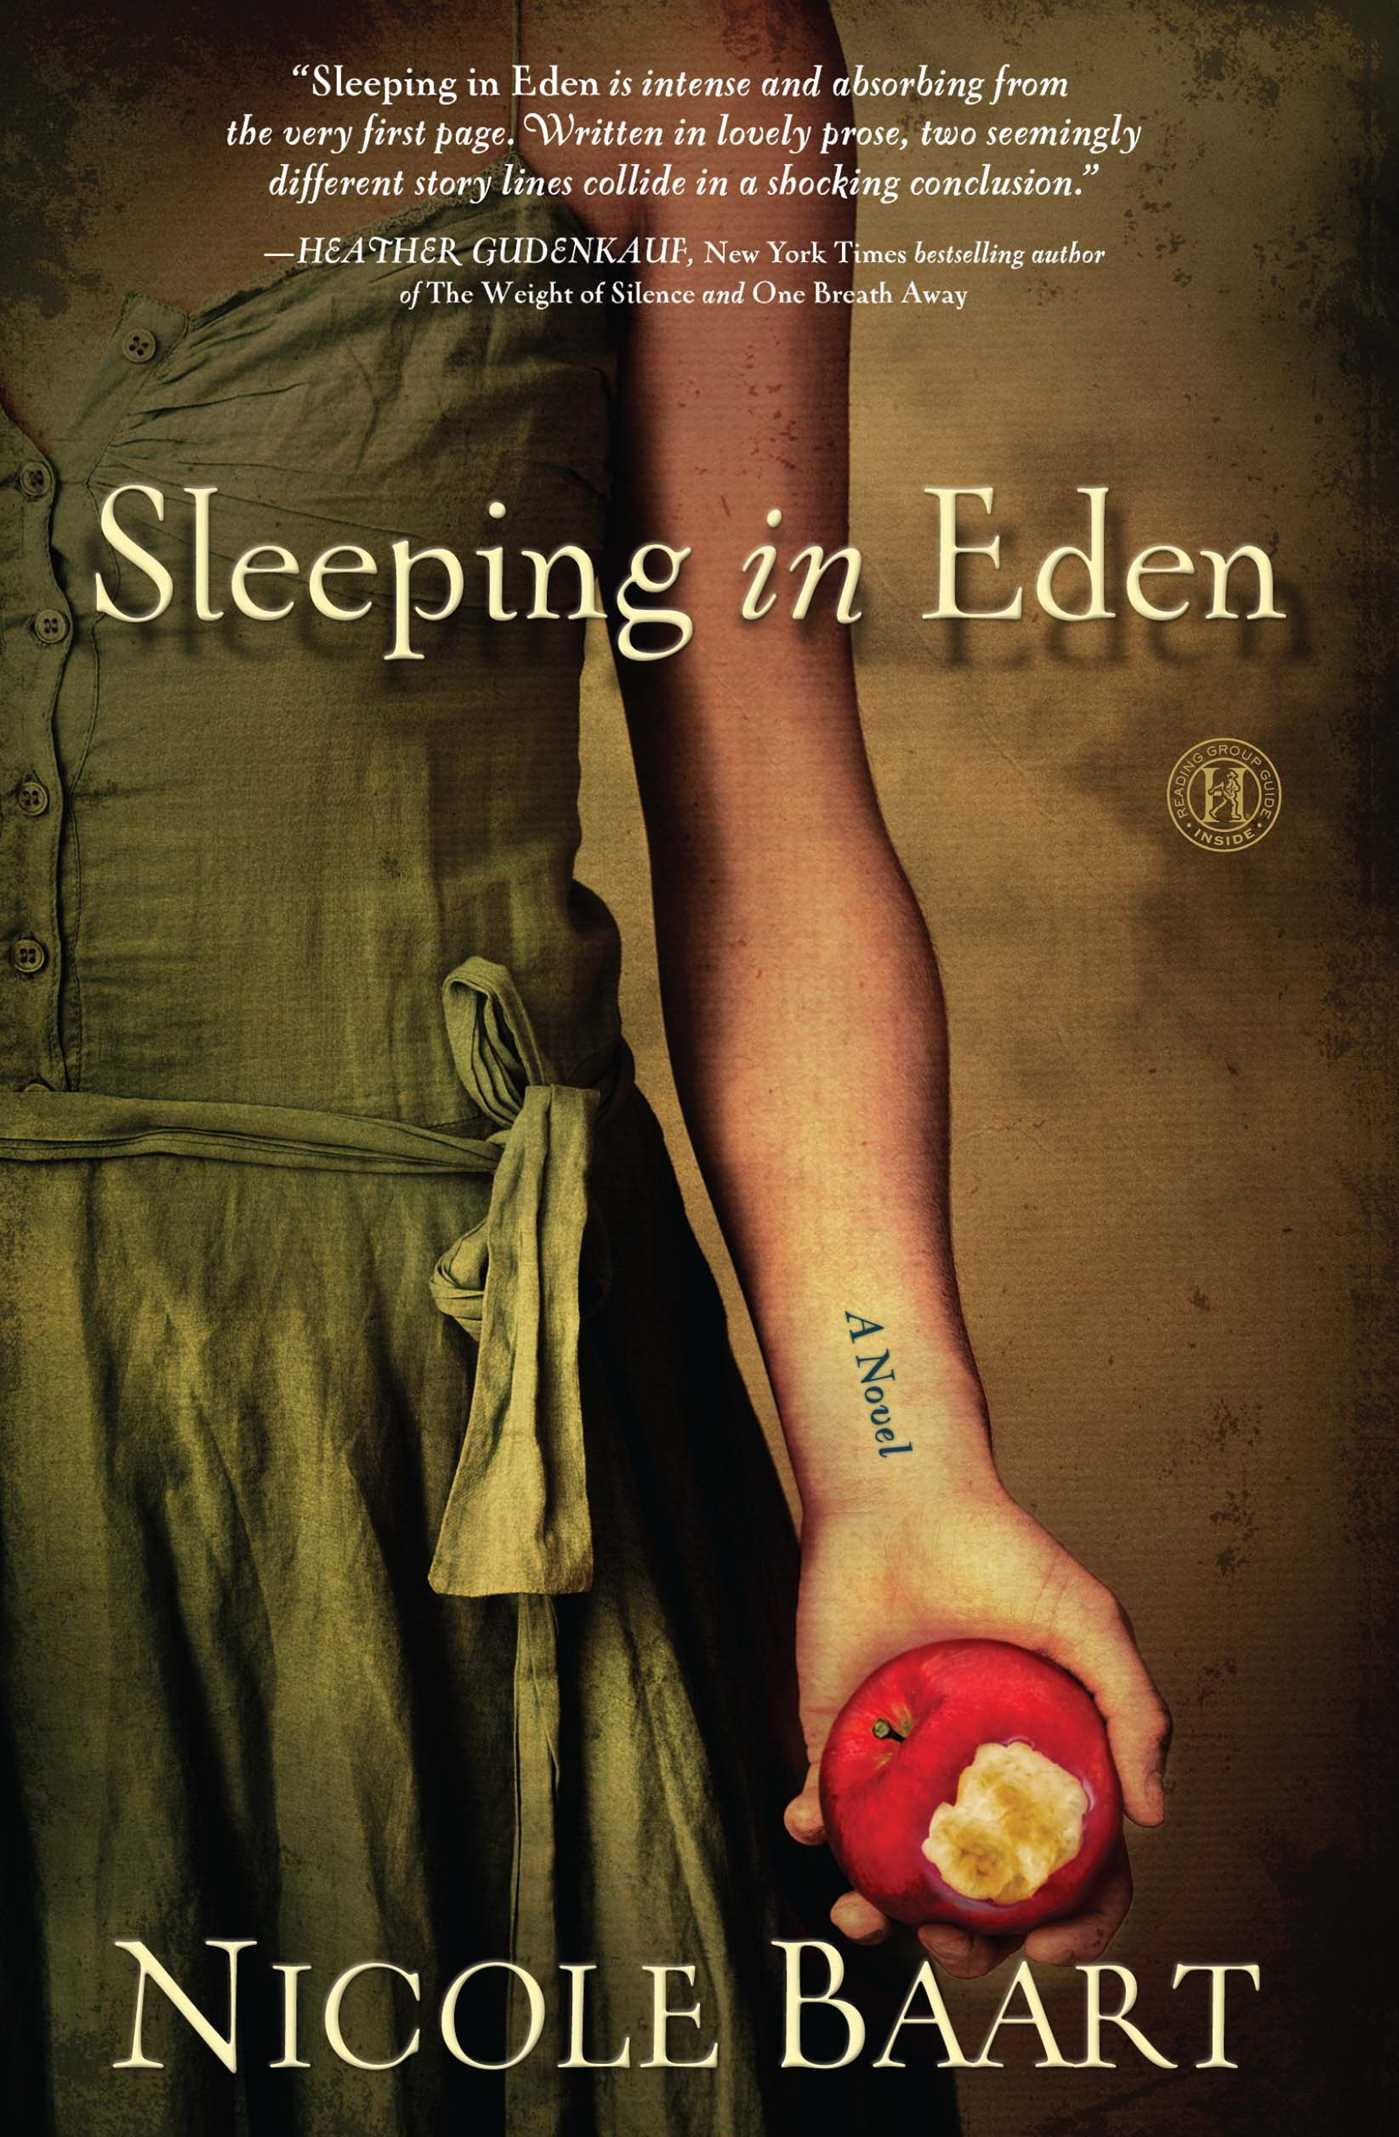 Sleeping-in-eden-9781439197370_hr